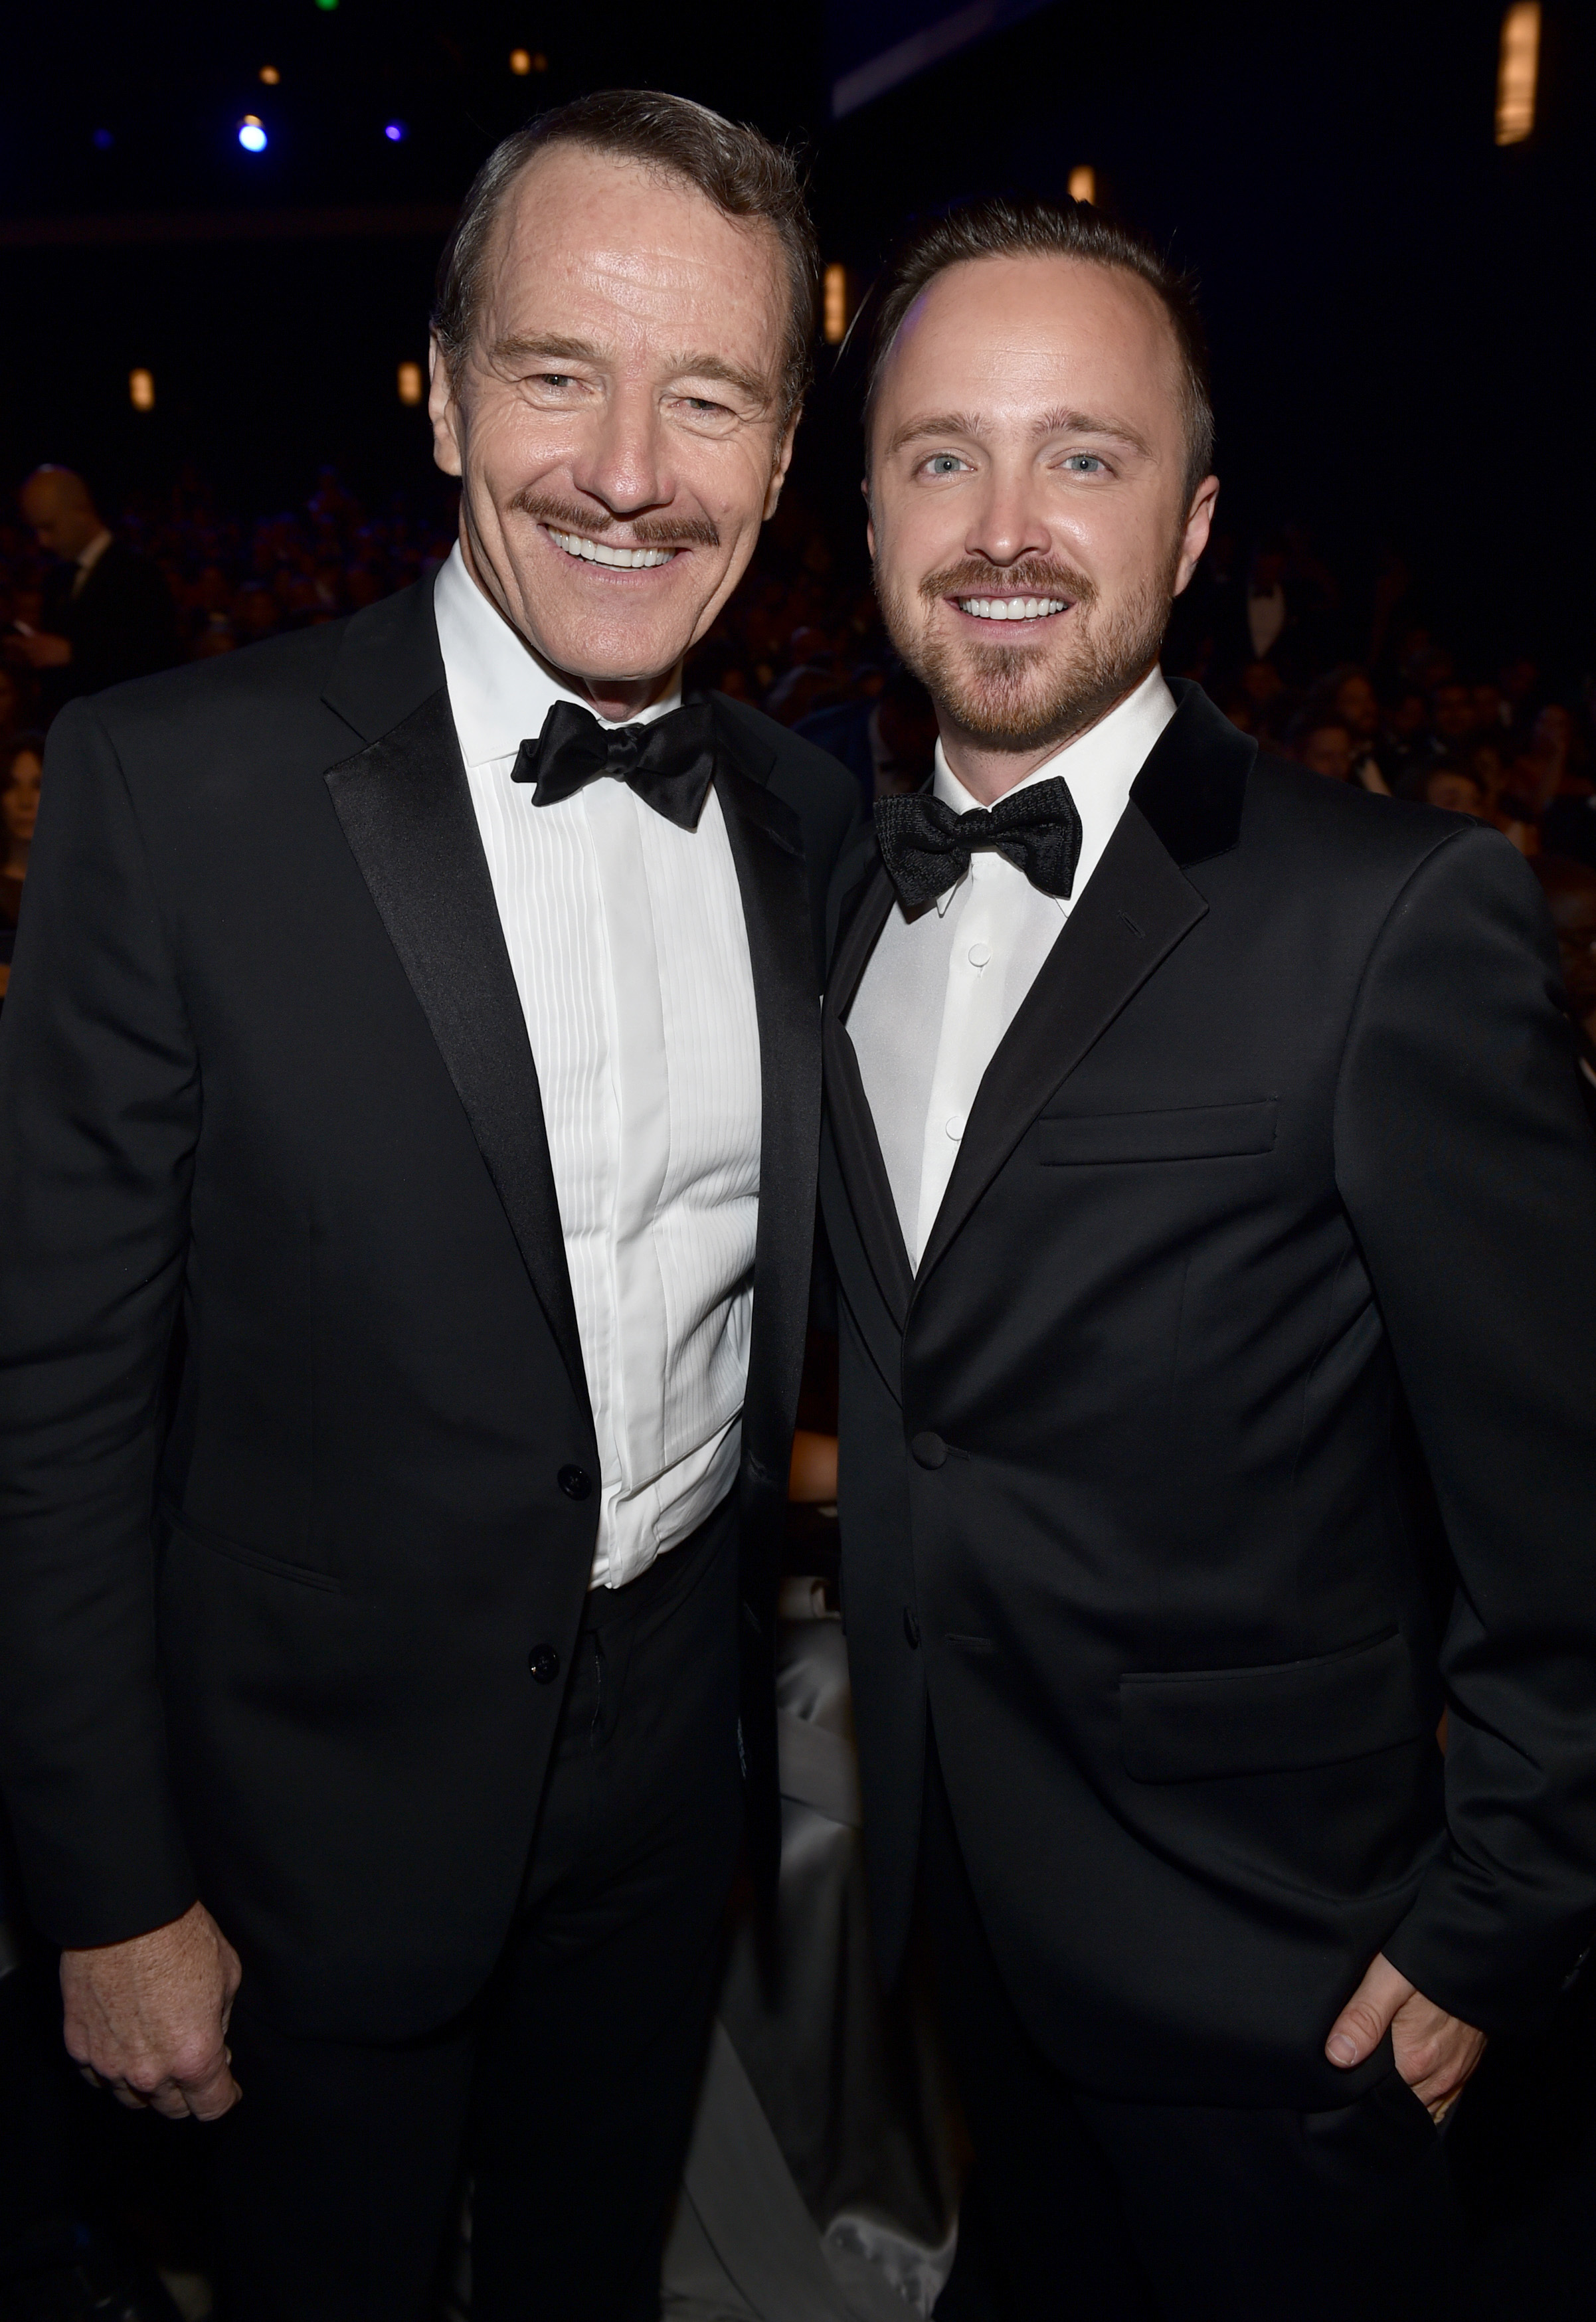 Bryan Cranston and Aaron Paul attend the 66th Primetime Emmy Awards at the Nokia Theatre L.A. Live in Los Angeles on Aug. 25, 2014.